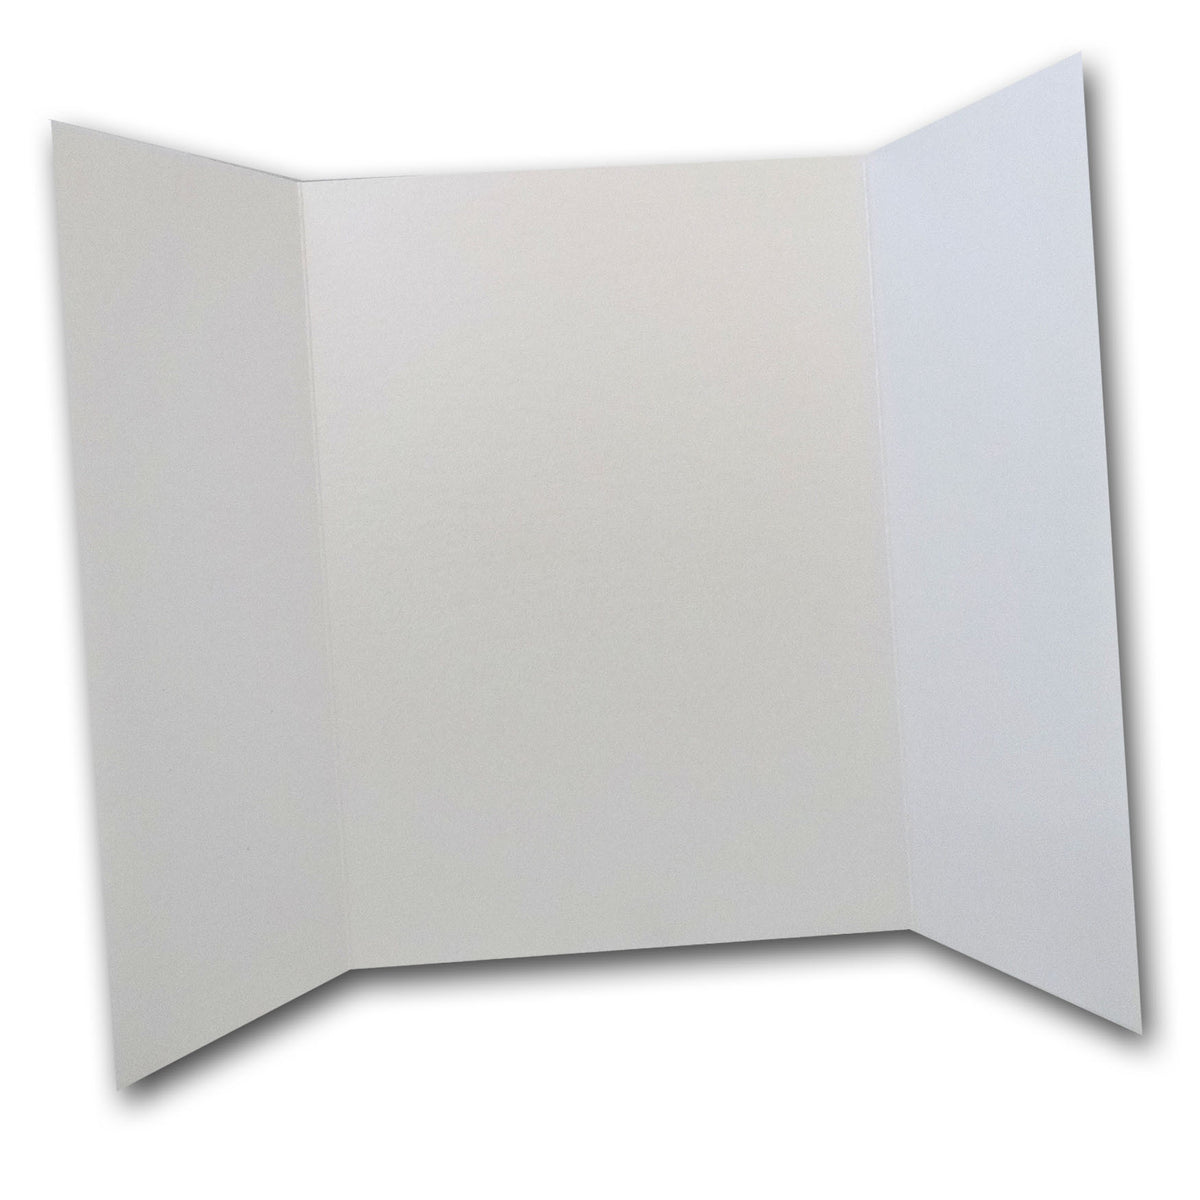 Shimmery White 5x7 Gatefold Discount Card Stock DIY Invitations